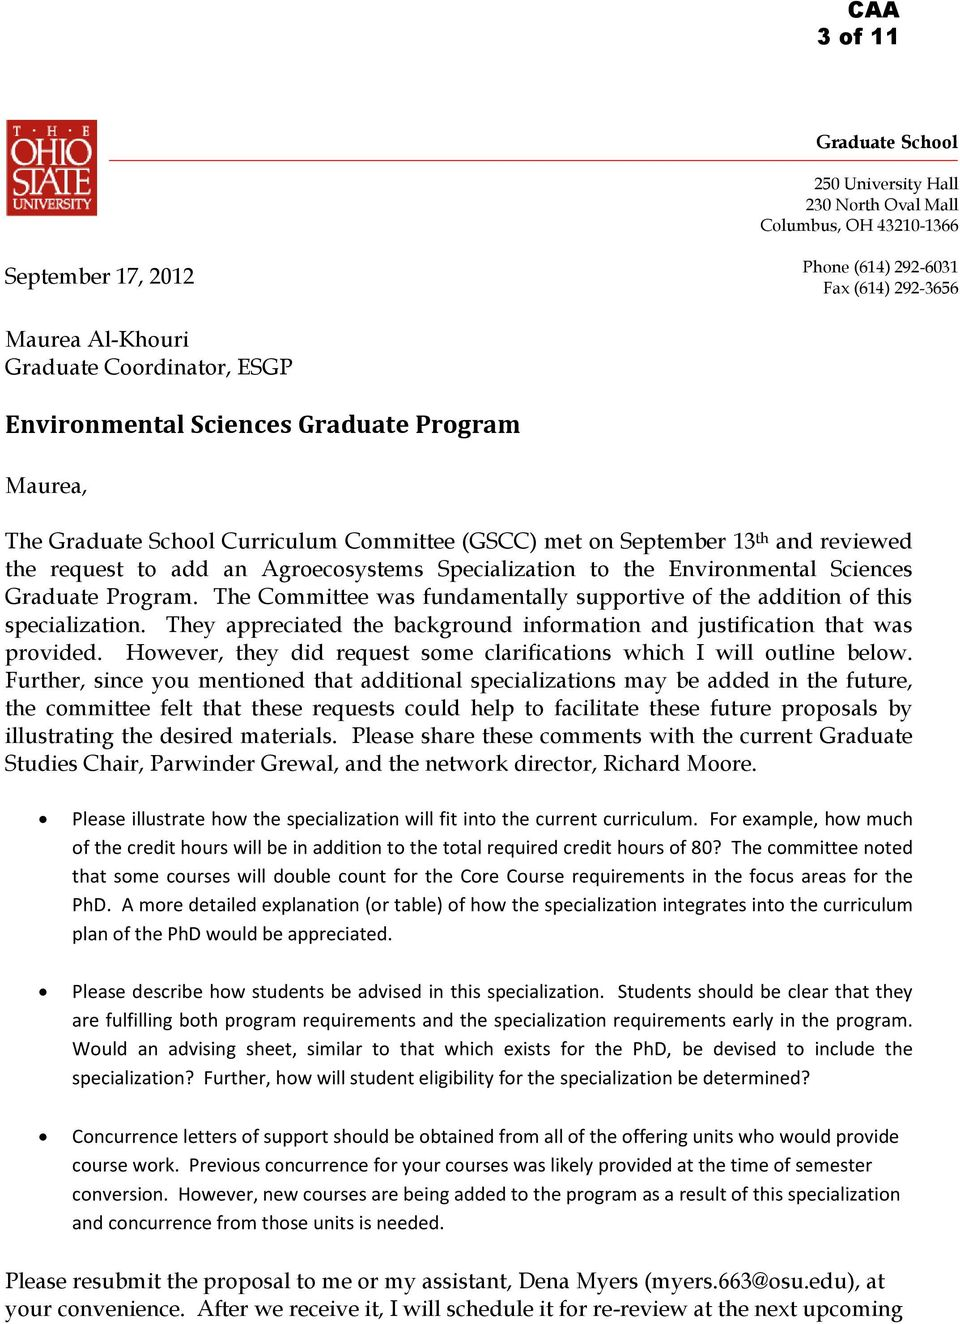 Environmental Sciences Graduate Program. The Committee was fundamentally supportive of the addition of this specialization.